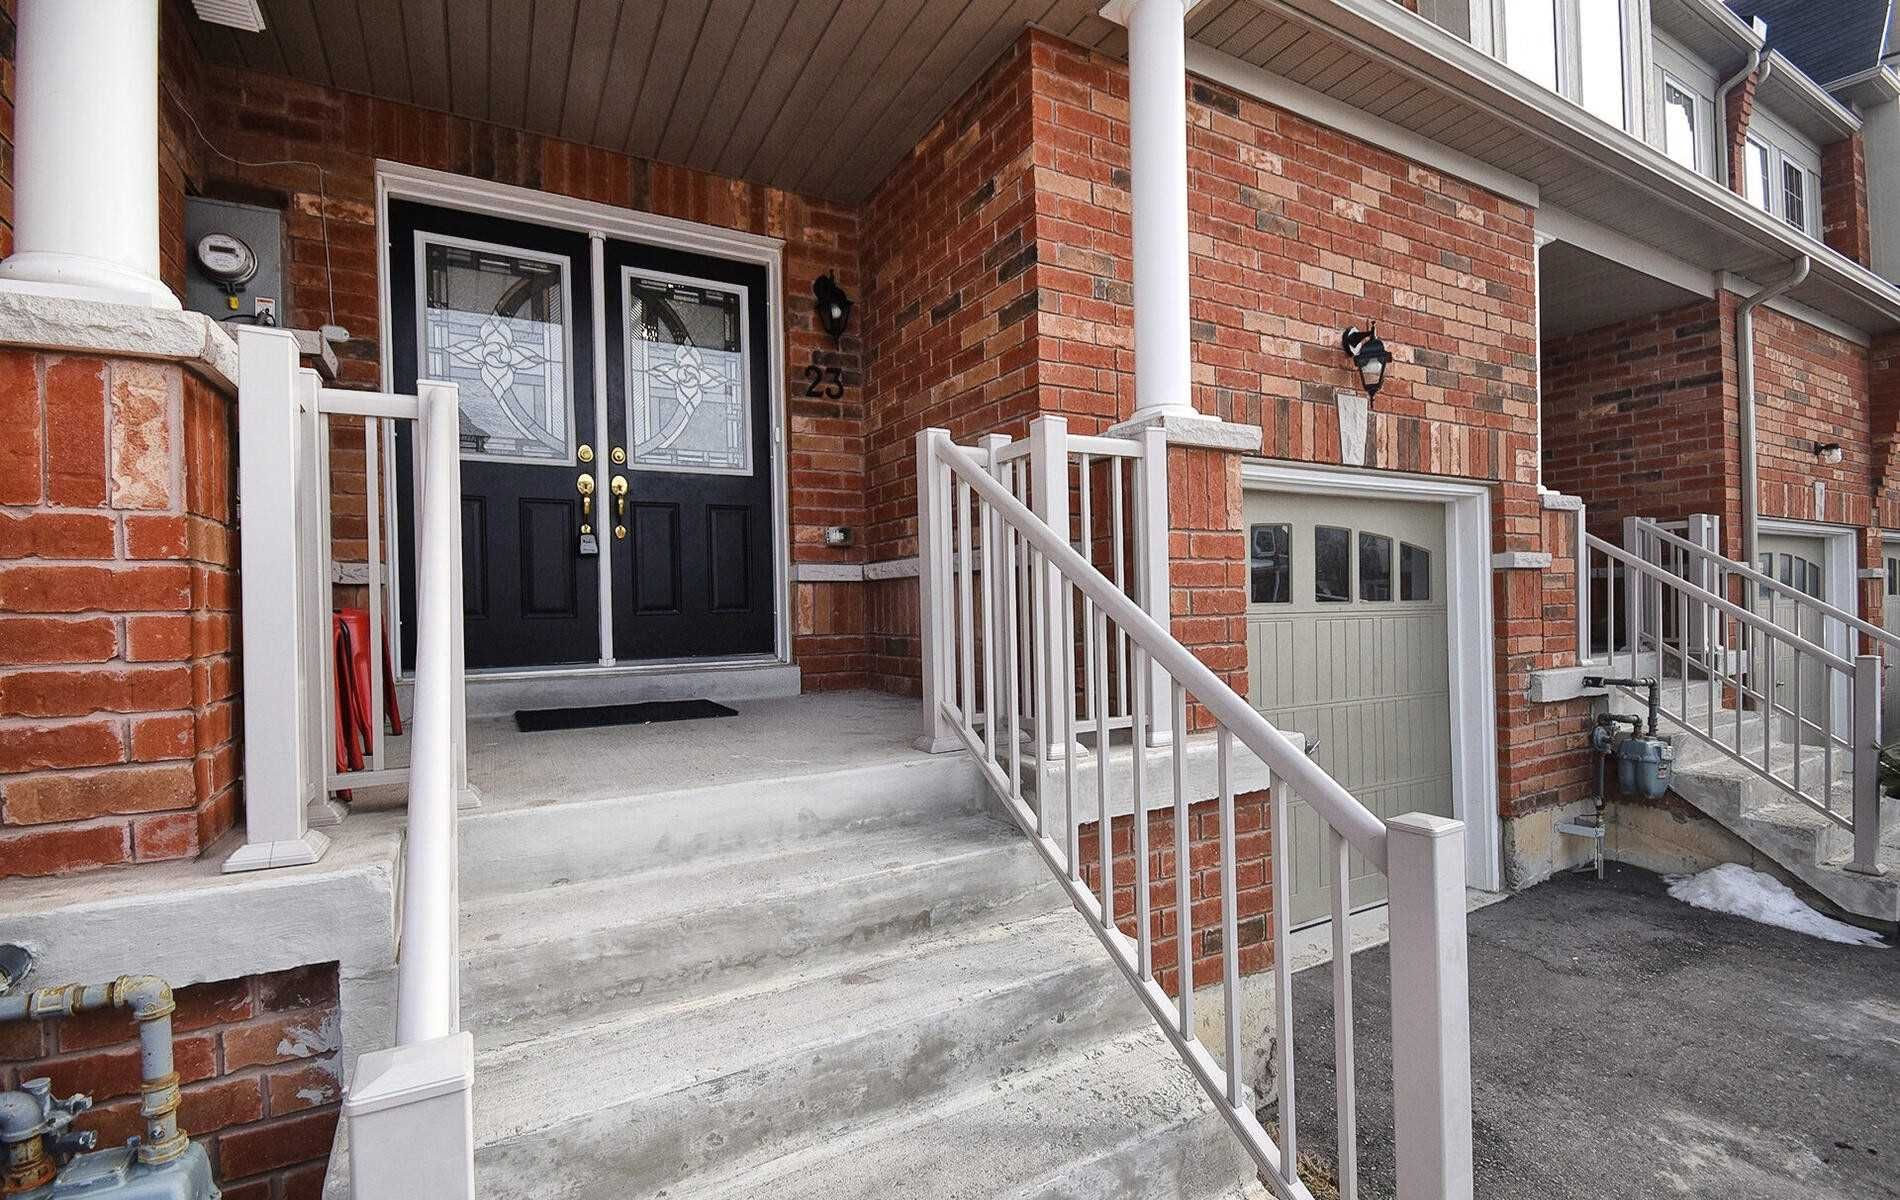 Main Photo: 23 E Clarinet Lane in Whitchurch-Stouffville: Stouffville House (2-Storey) for sale : MLS®# N5093596